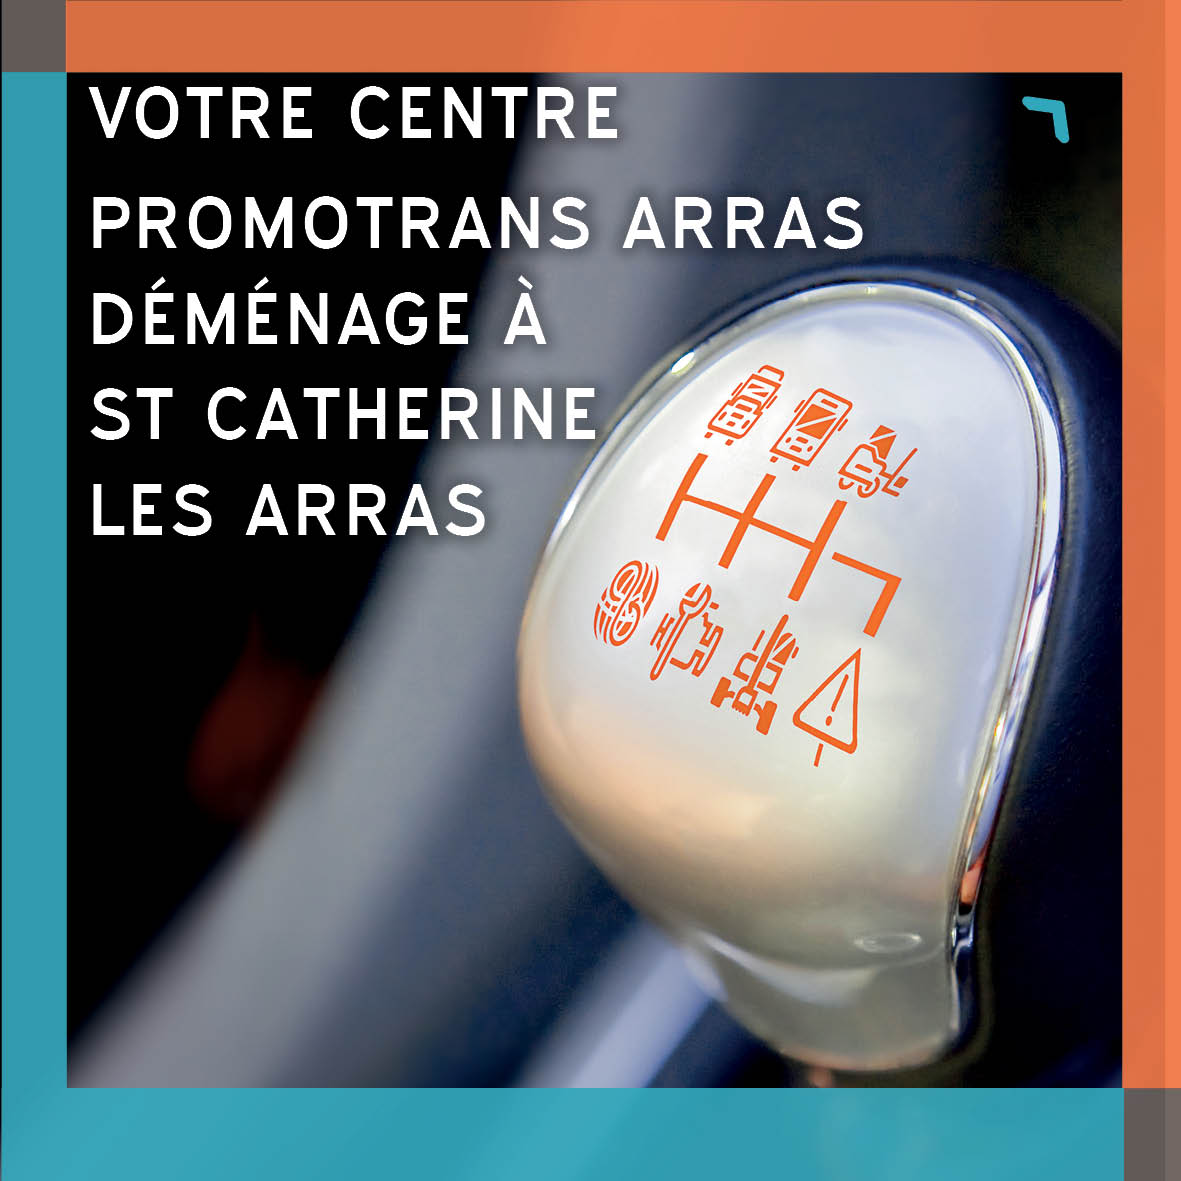 DÉMÉNAGEMENT DU CENTRE PROMOTRANS ARRAS